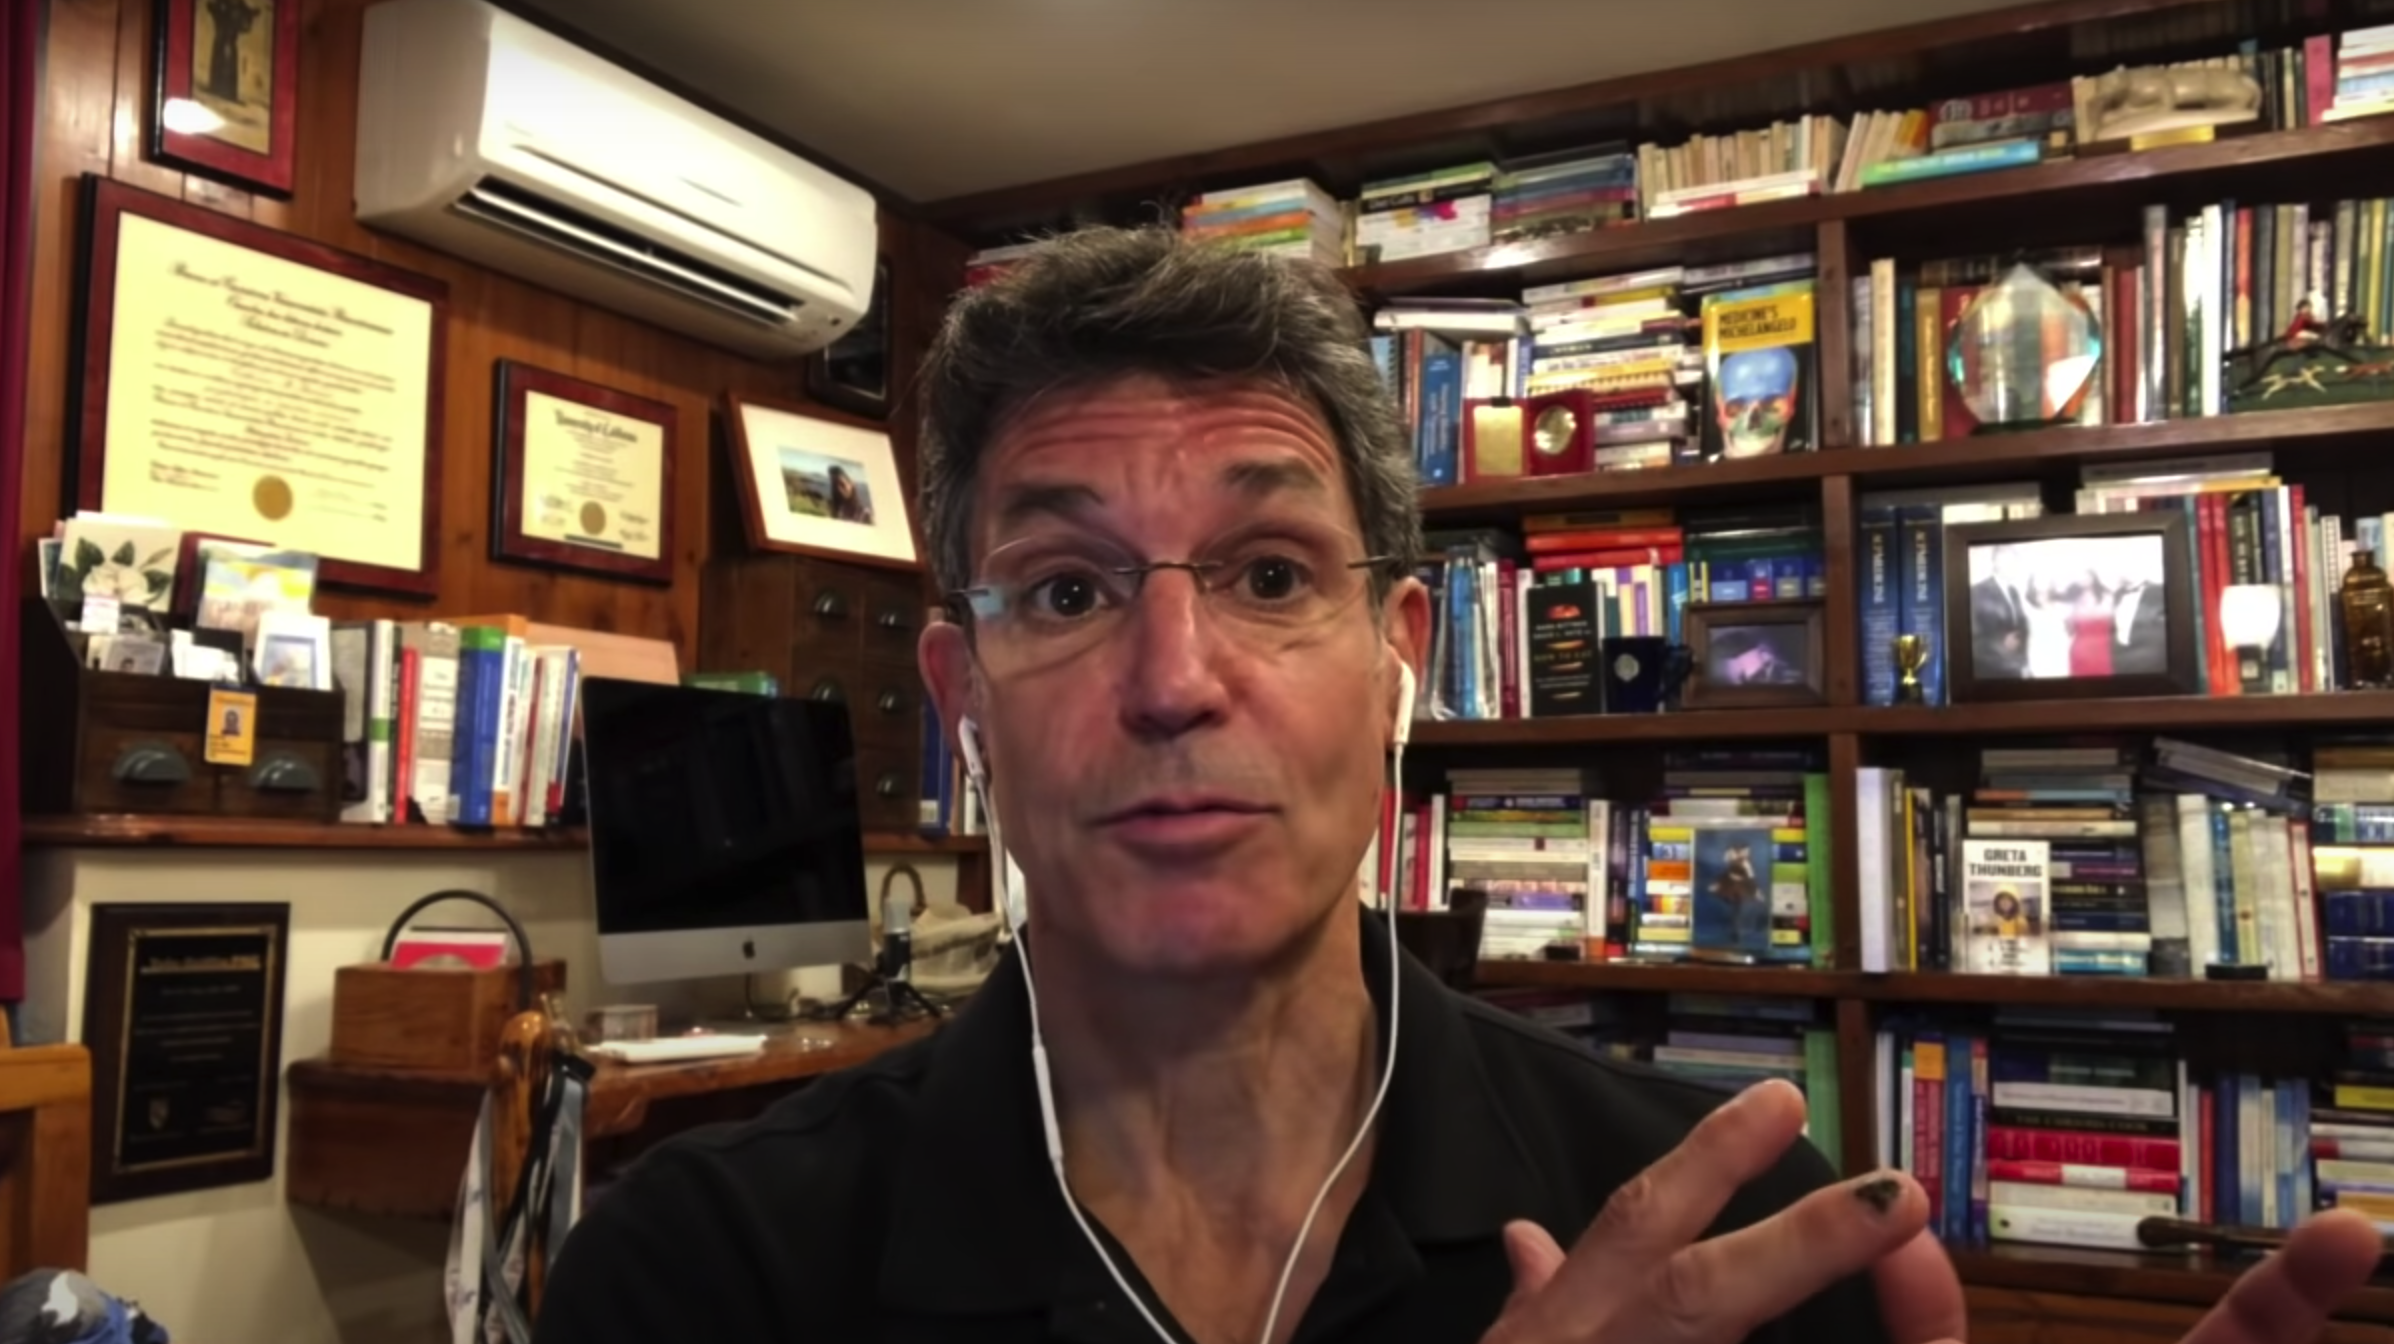 The Esteemed Professor David Katz Weighs in on Hydroxychloroquine